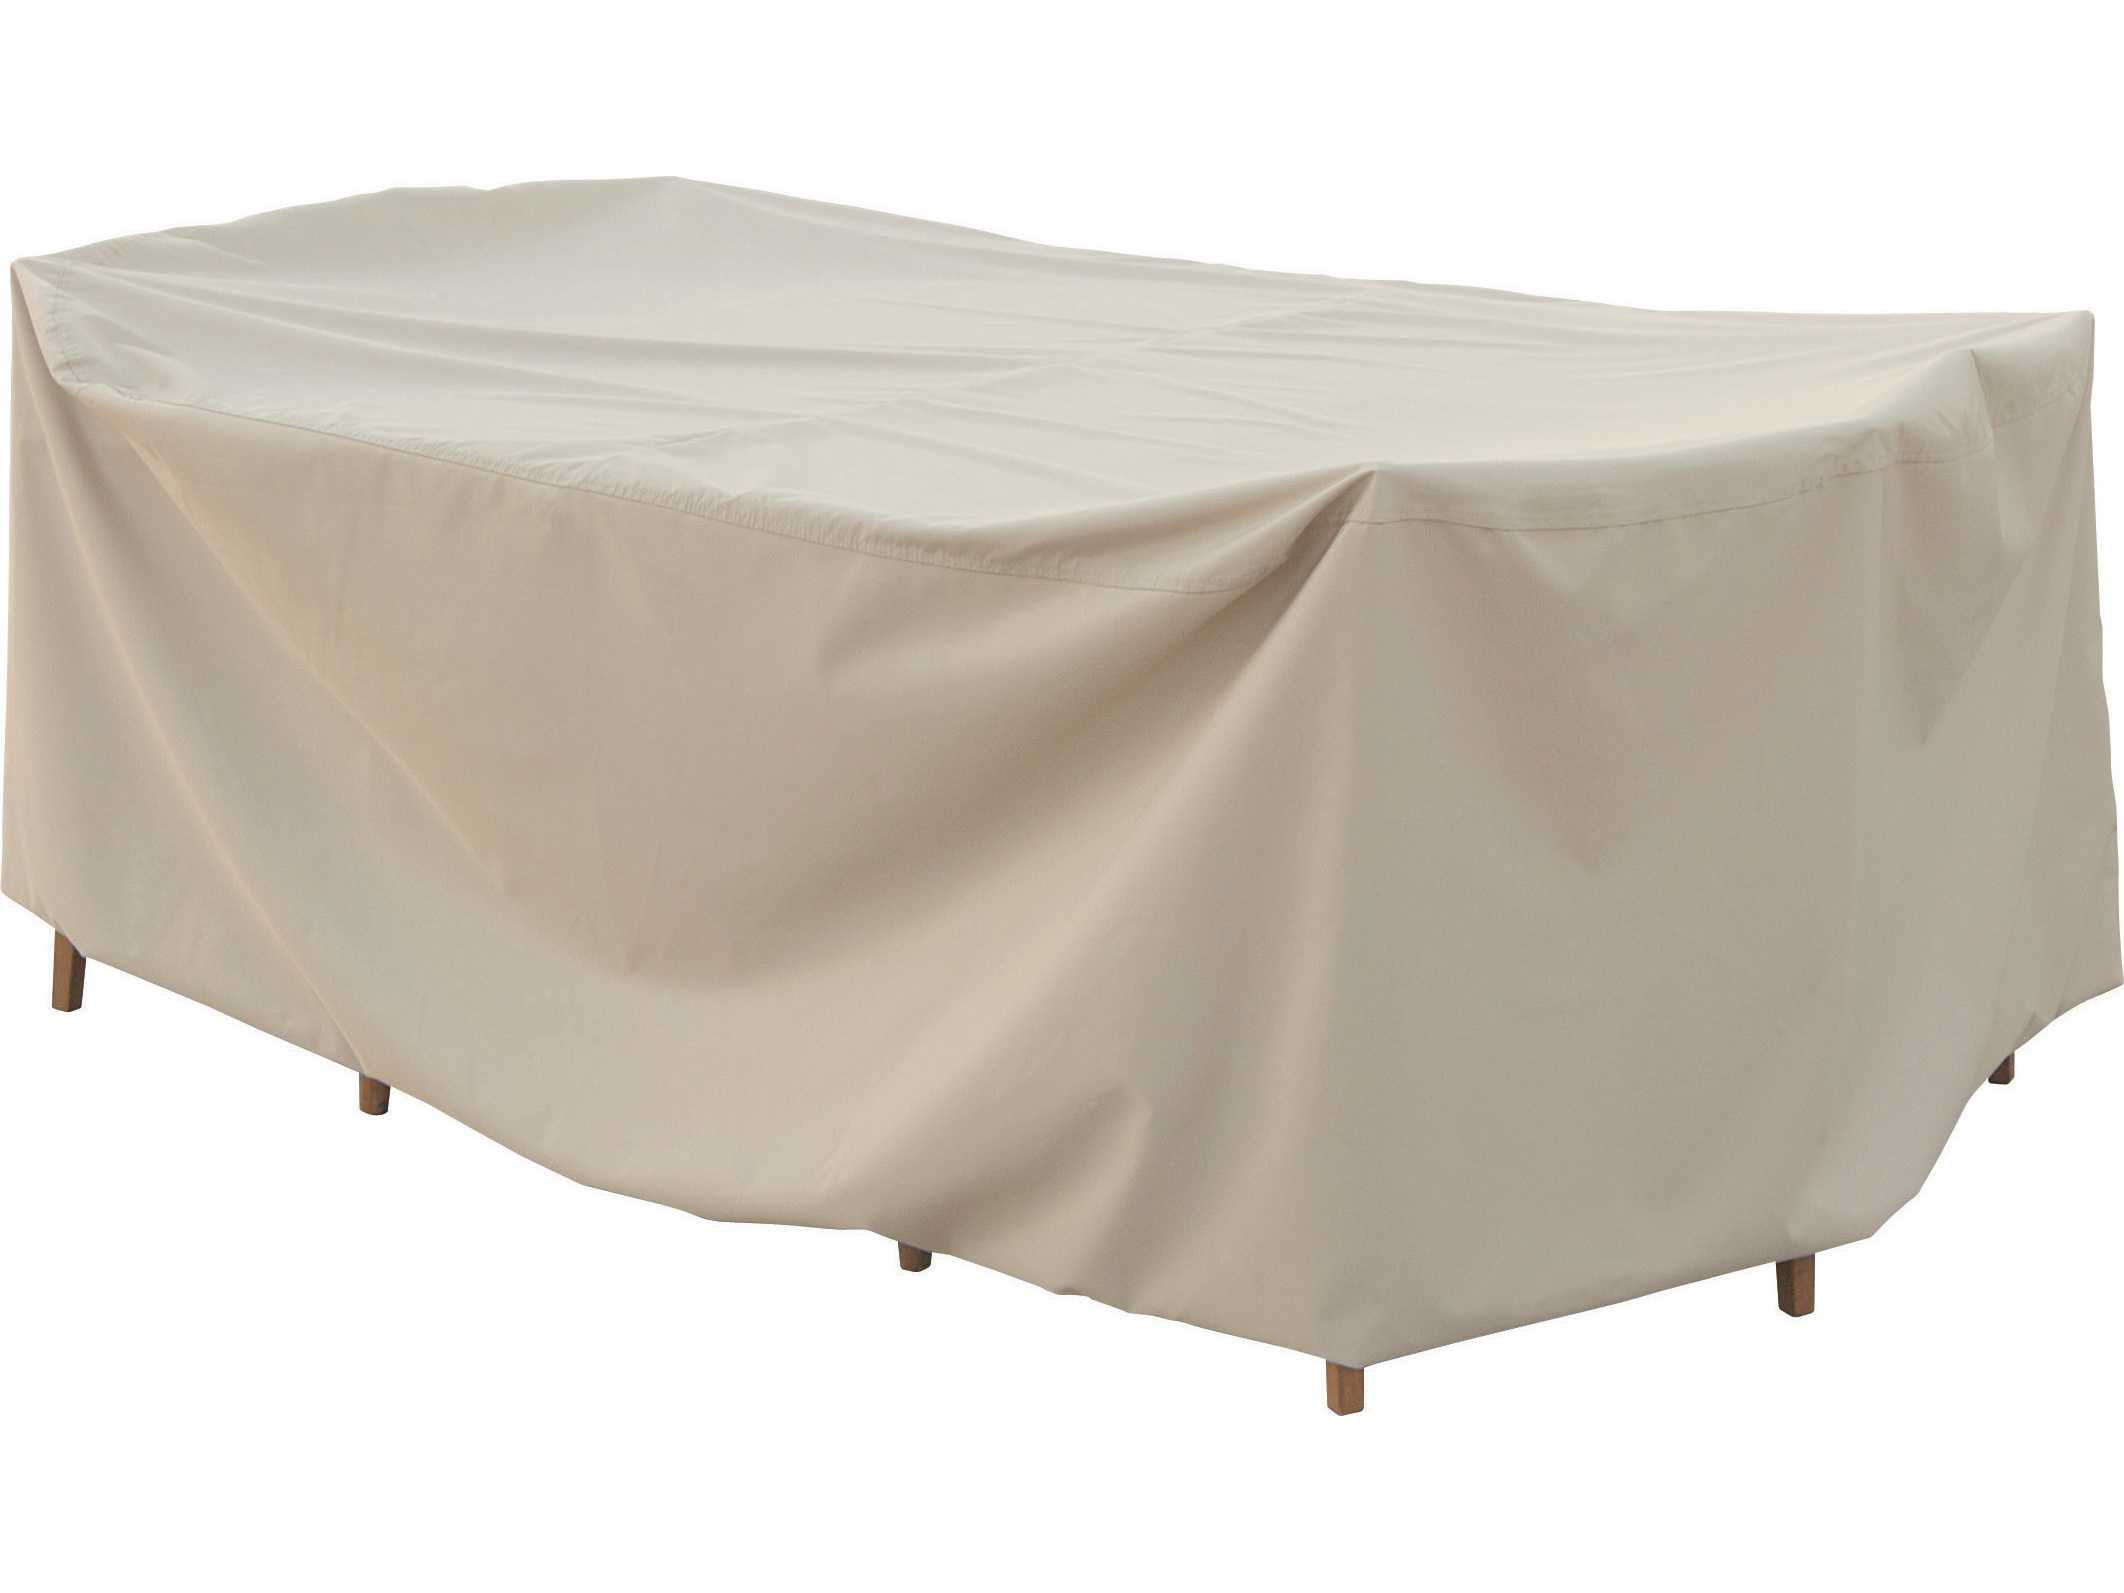 Treasure Garden Small Oval Rectangle Table & Chairs Cover